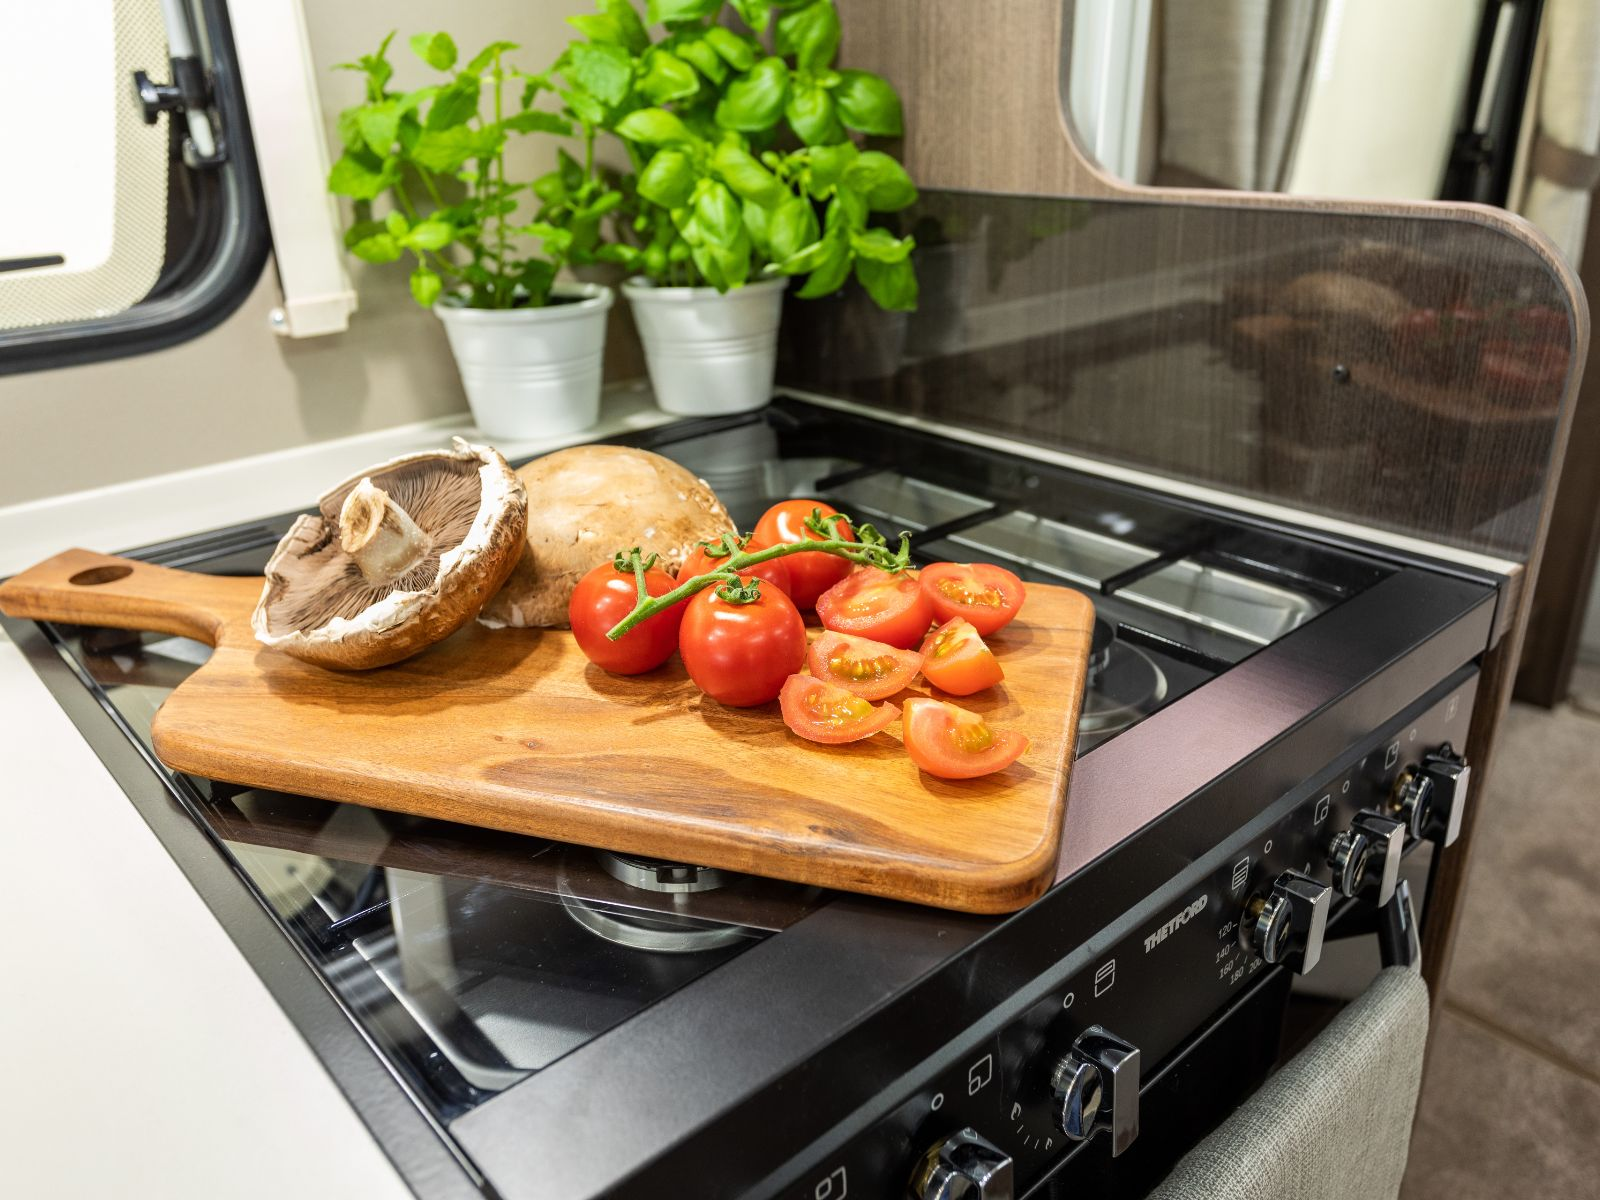 Mushrooms and tomatoes resting on wooden chopping board on top of the oven glass protector'